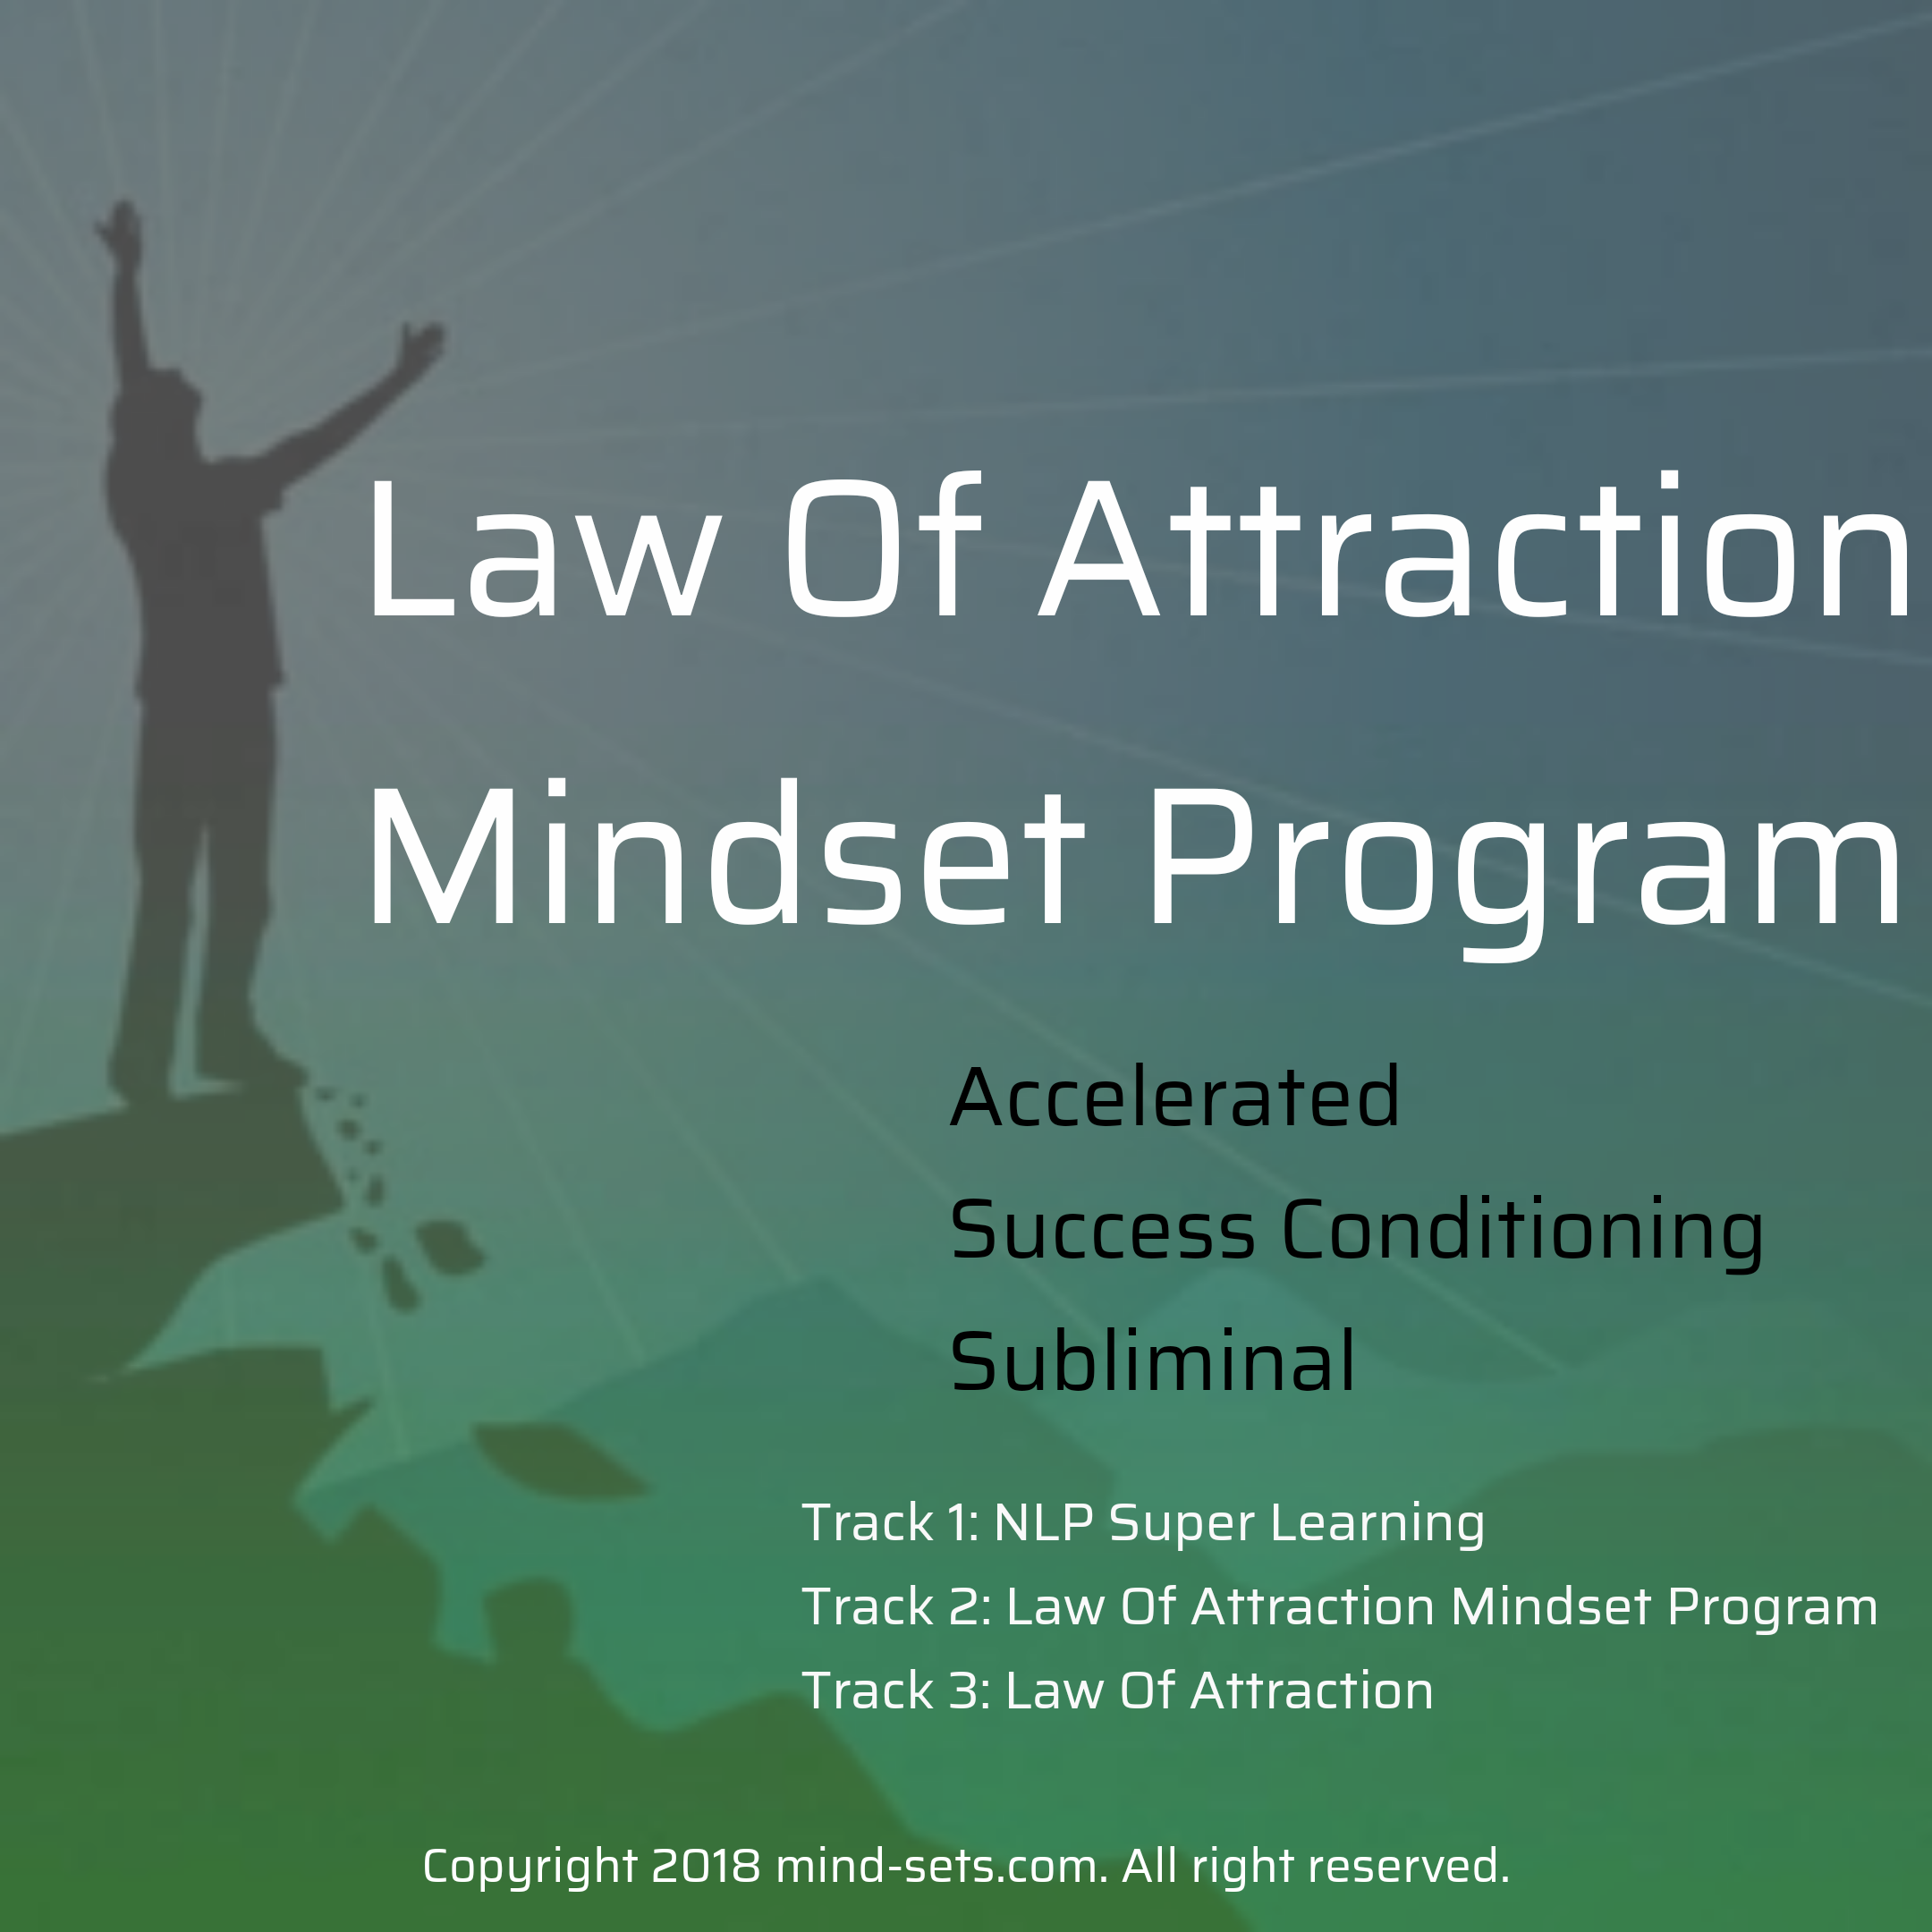 Law Of Attraction Mindset Program